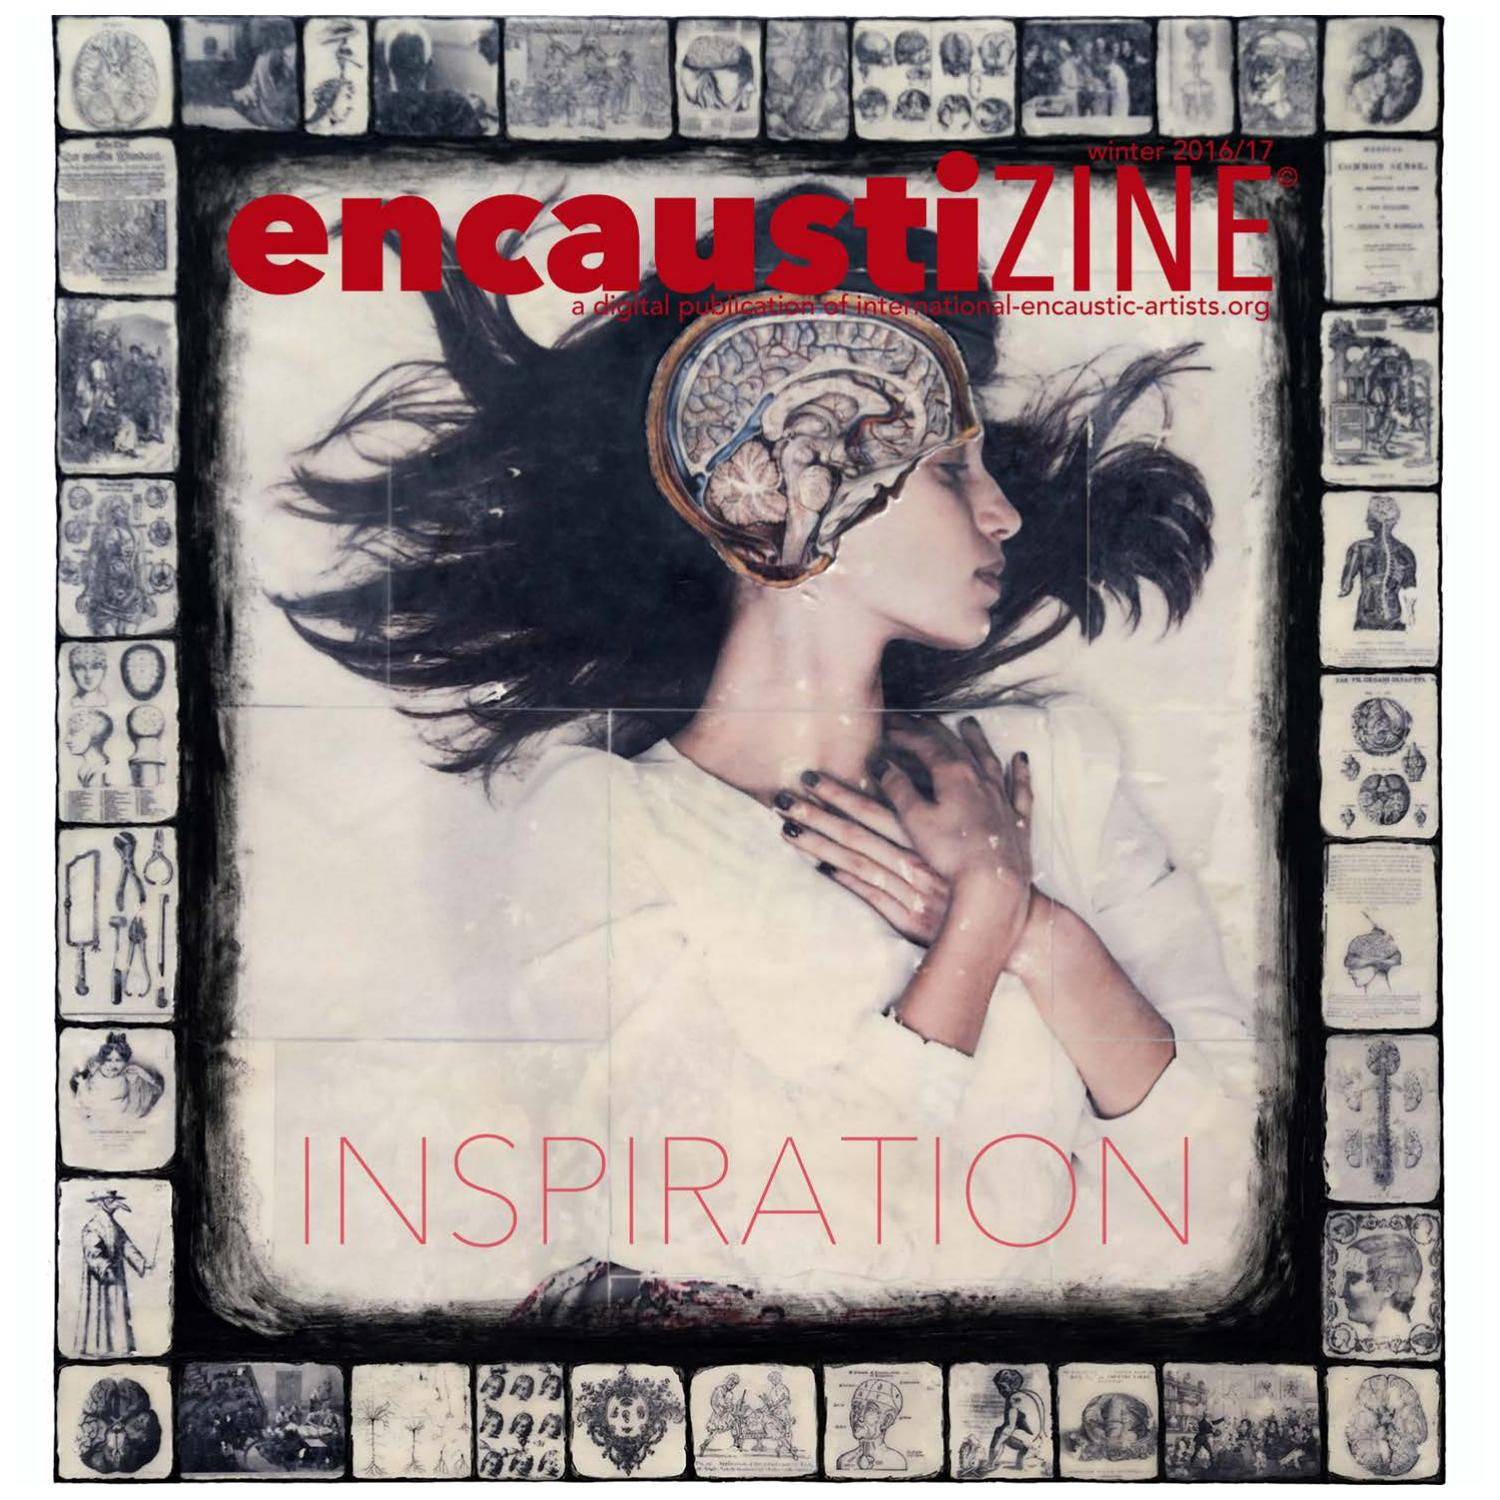 Encaustizine winter 16 17 by international encaustic artists issuu fandeluxe Image collections